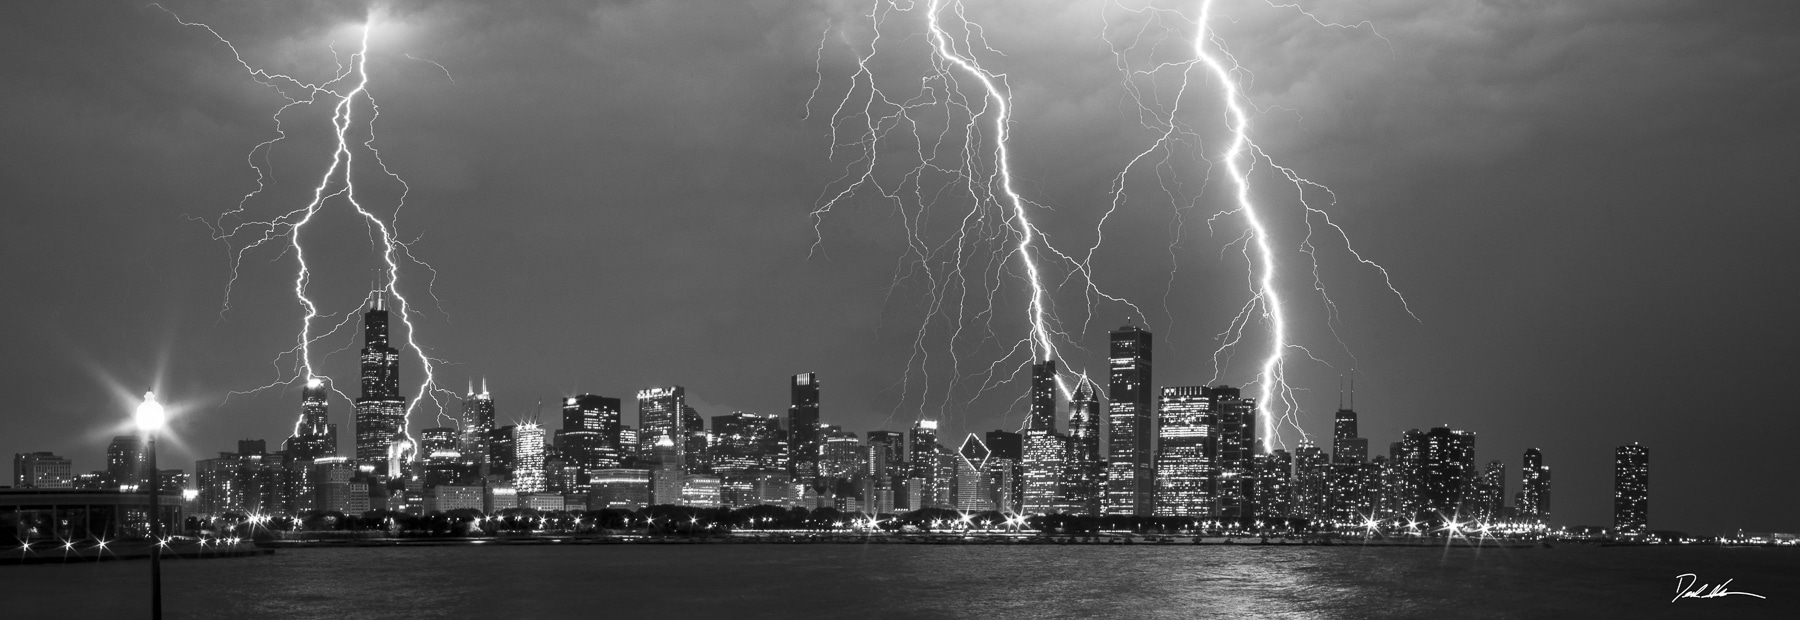 Nighttime storm in Chicago